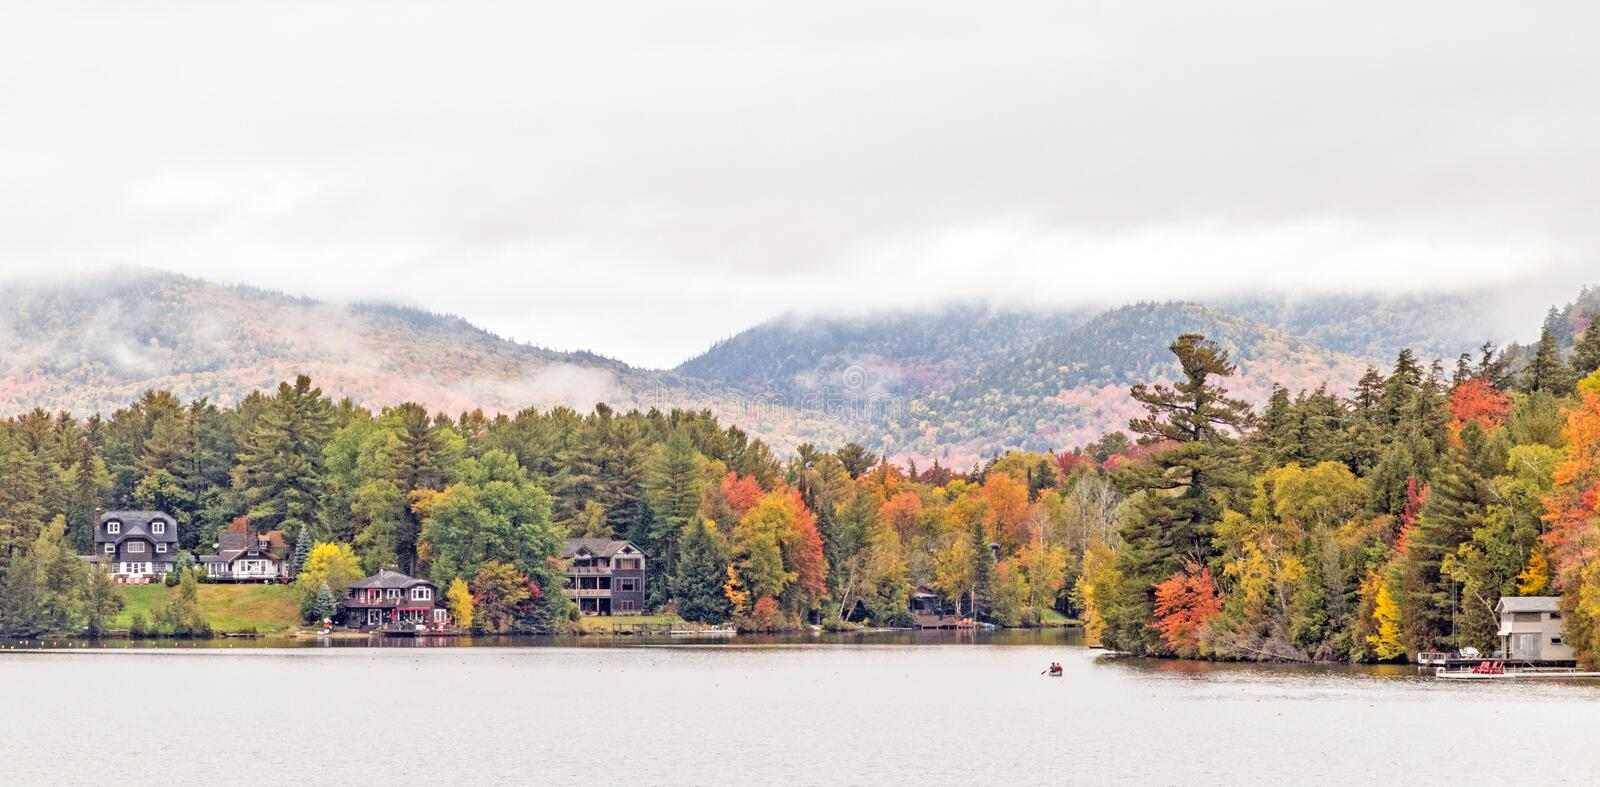 Mirror Lake in fog, Lake Placid. Homes and businesses on edge or shoreline of Mirror Lake in fog, Lake Placid village, New York in Autumn colors, Adirondack royalty free stock images